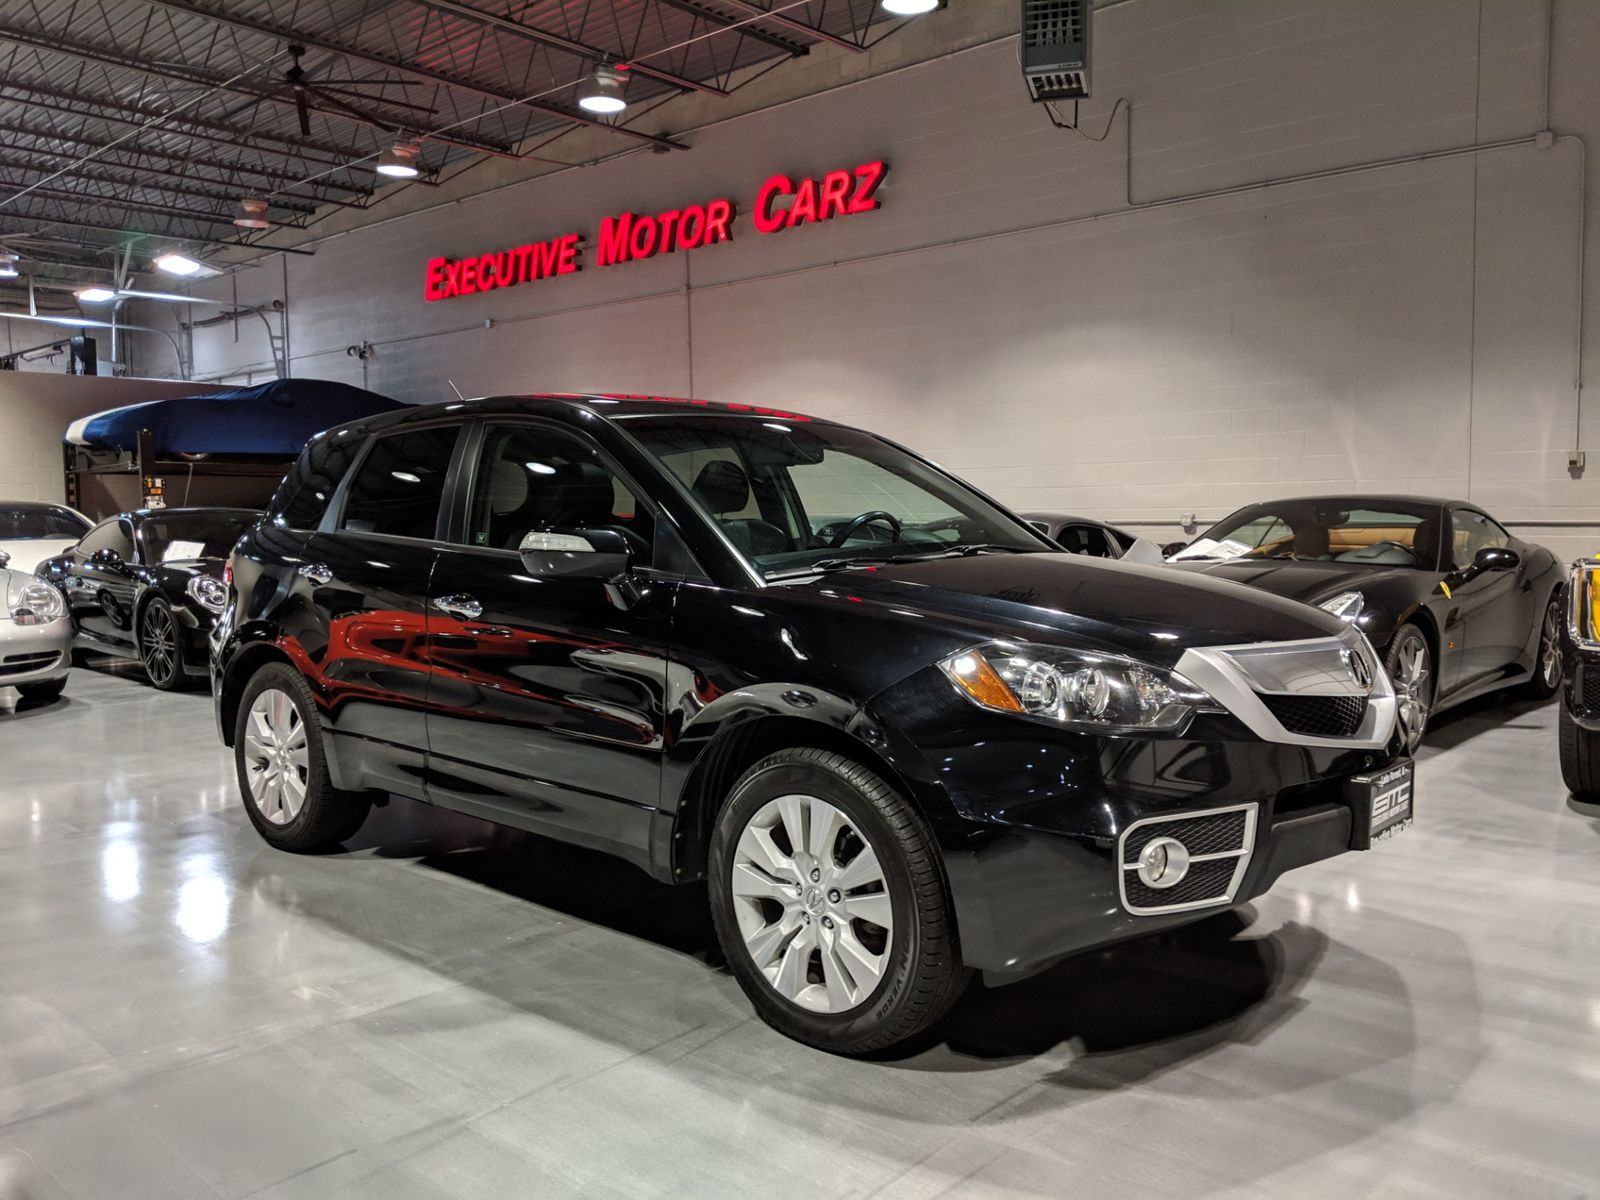 2017 Acura Rdx Suv Lake Forest Il Executive Motor Carz In